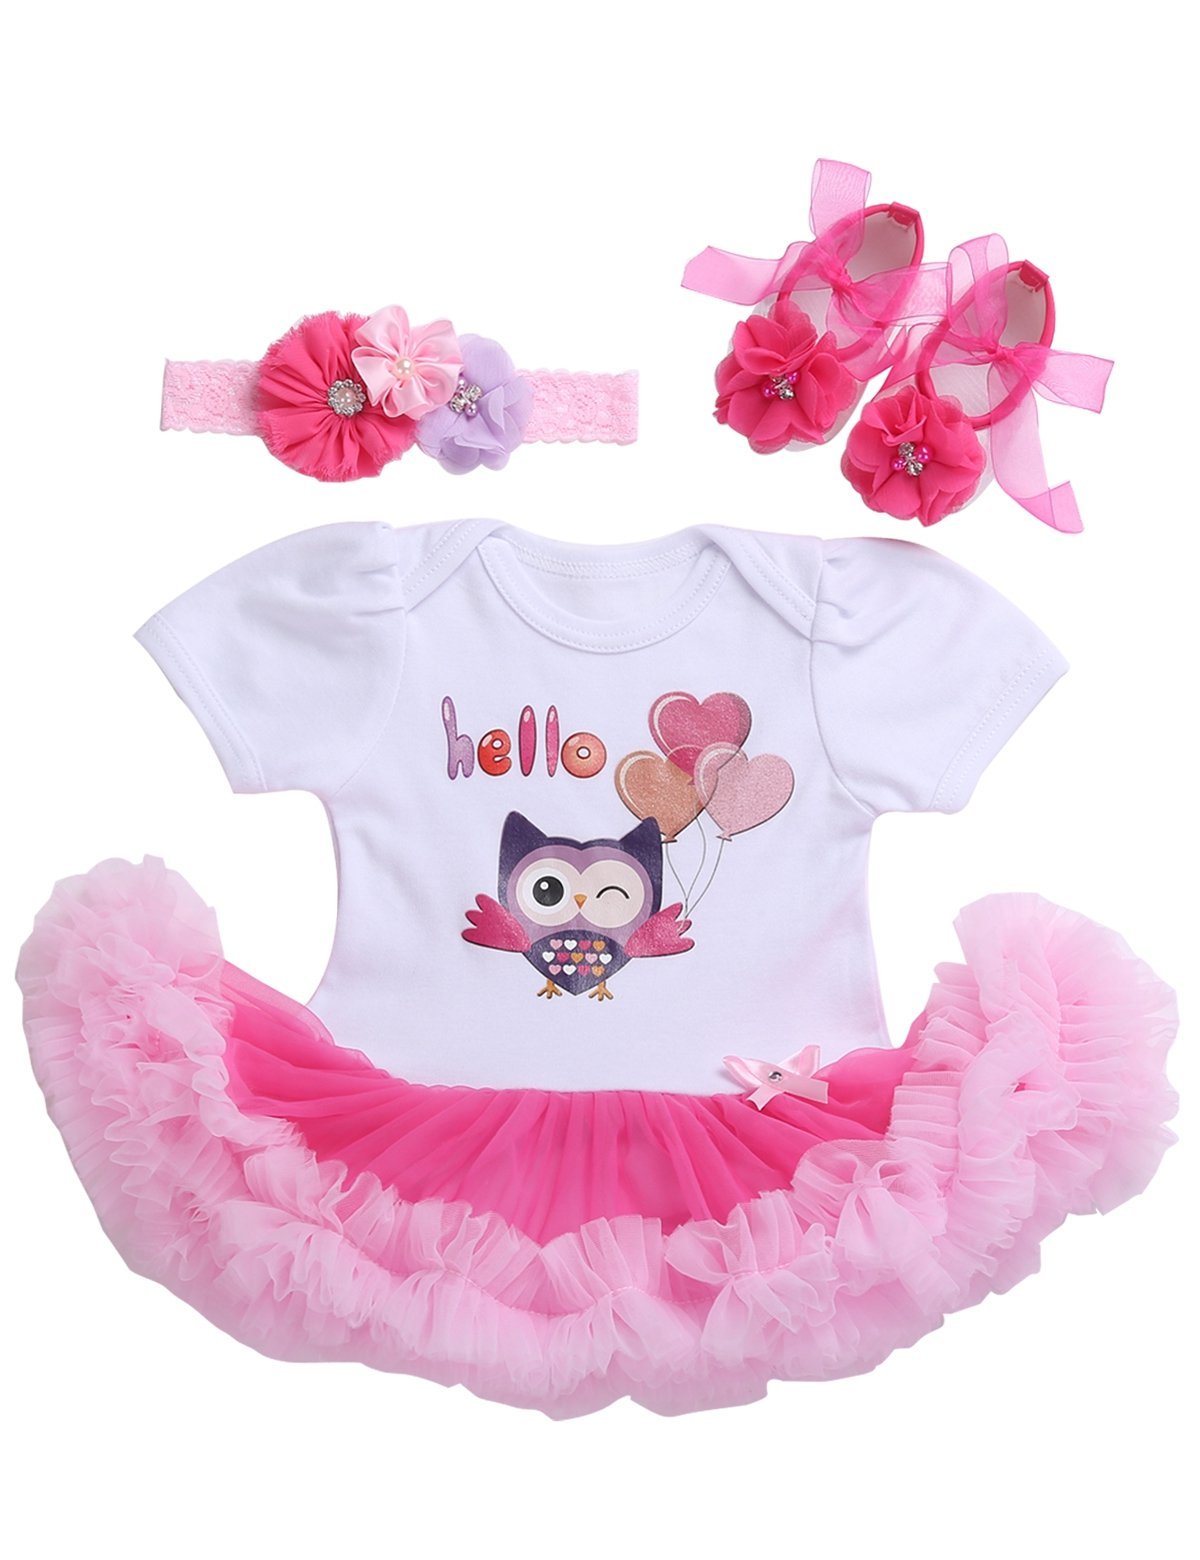 a4f56e2b8a2c8 Baby Girl 1st Birthday Party Dresses